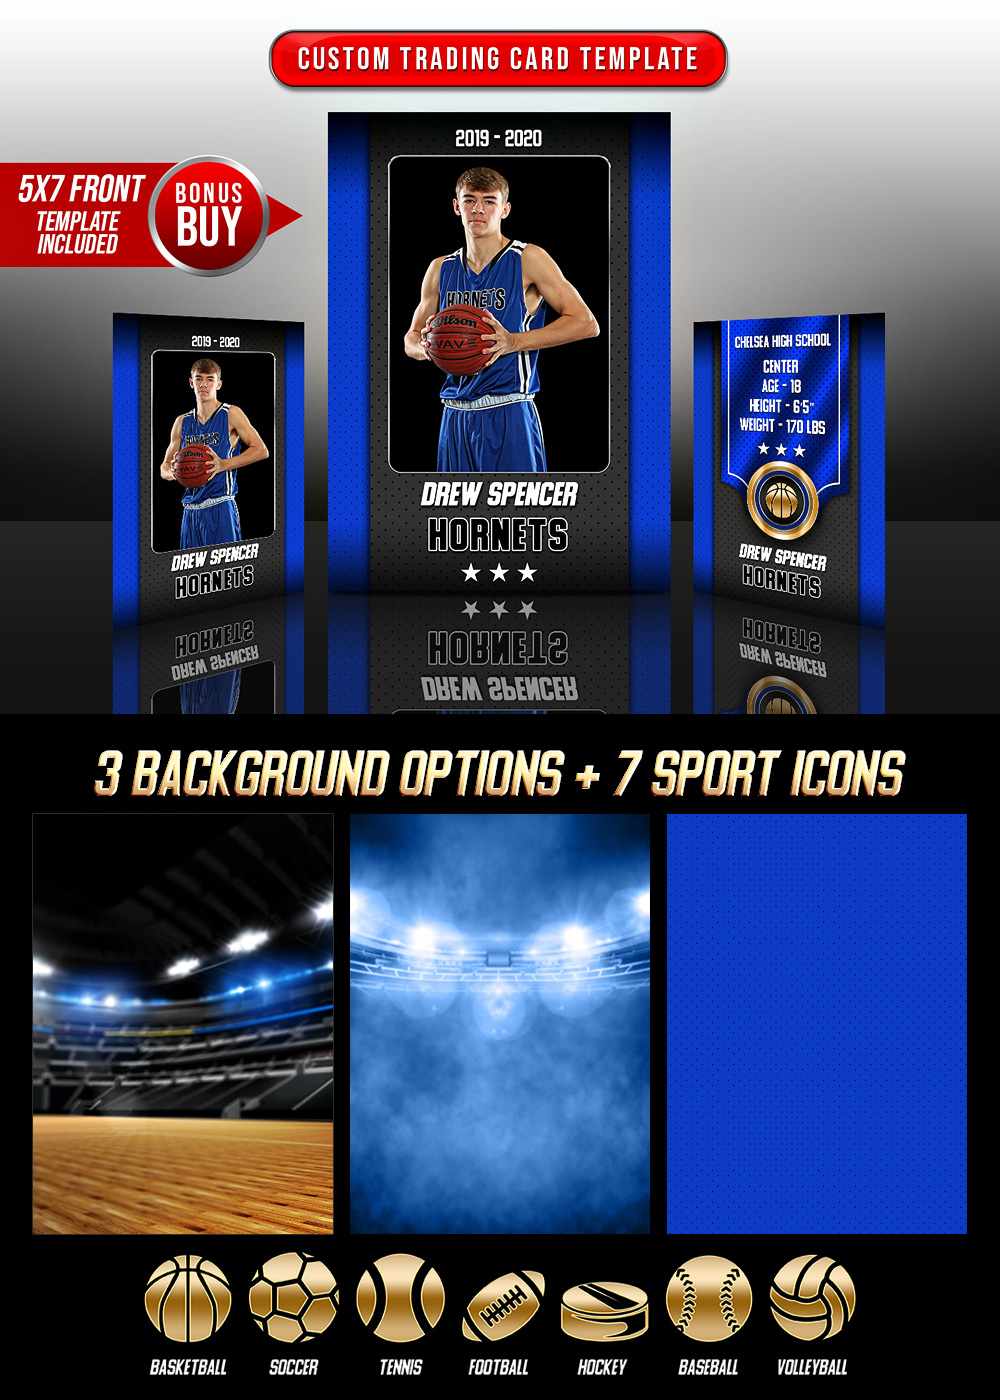 MULTI-SPORT TRADING CARDS AND 5X7 TEMPLATE - GOLD MEDAL